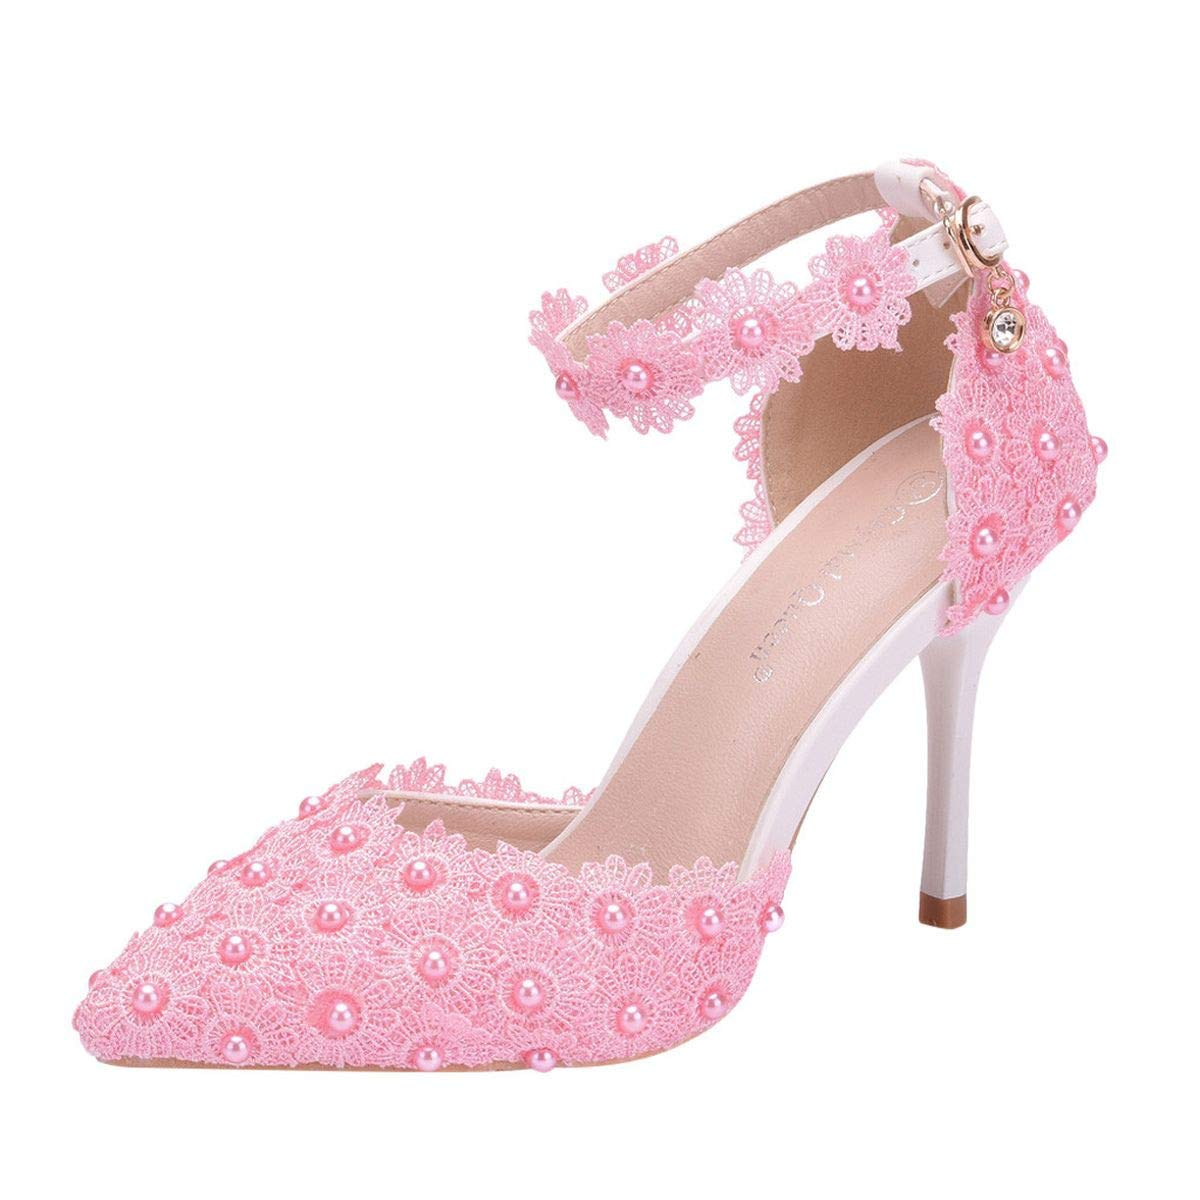 Women Vintage Closed Toe Pumps High Heel Flowers Lace Wedding Bridal Dress Shoes Stiletto Kitten Heels Wedding Pump (Pink, 5)